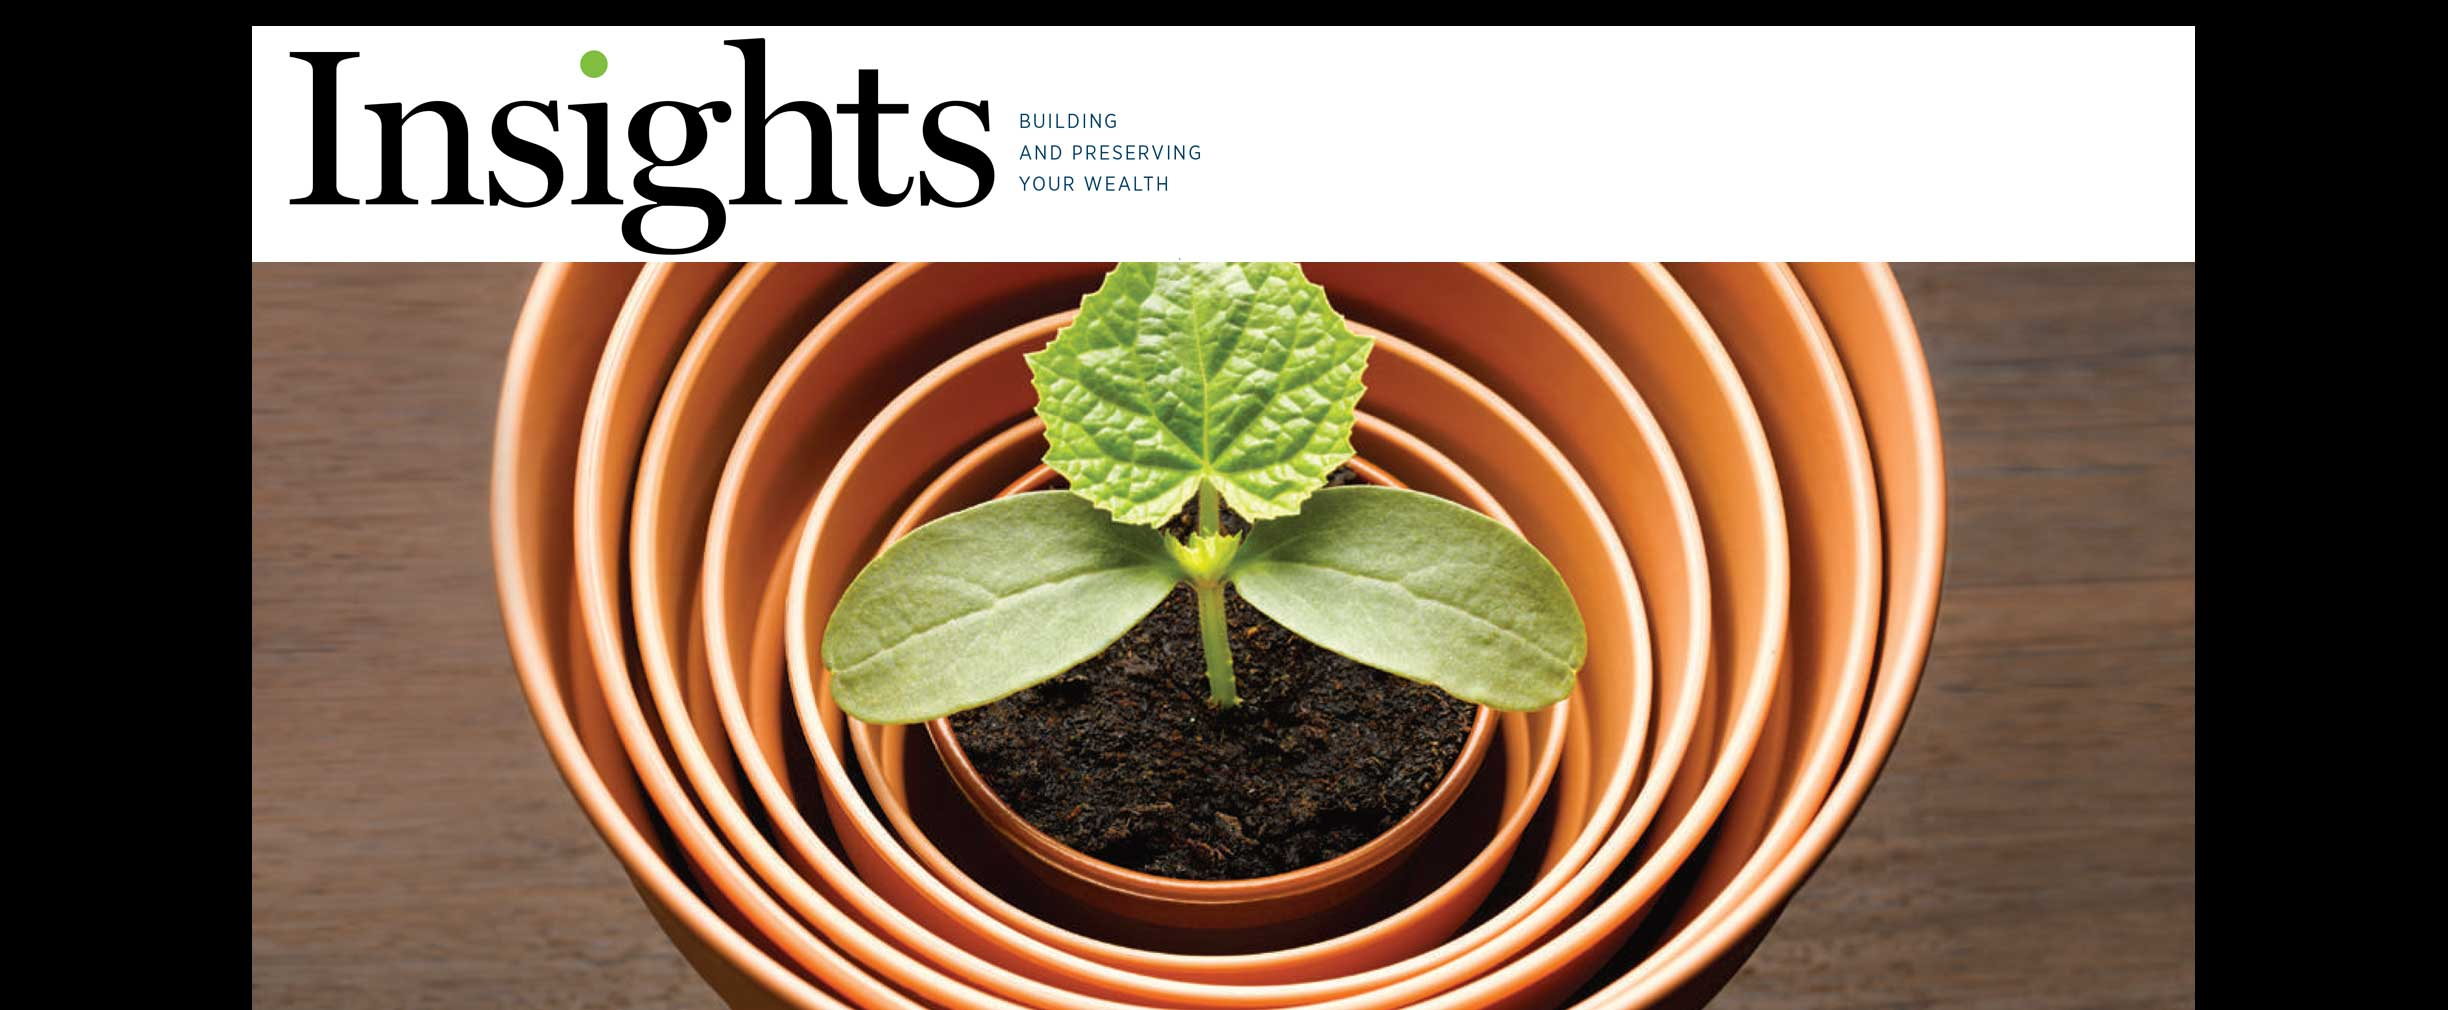 Insights Magazine Spring 2016 Growing Your Next Million